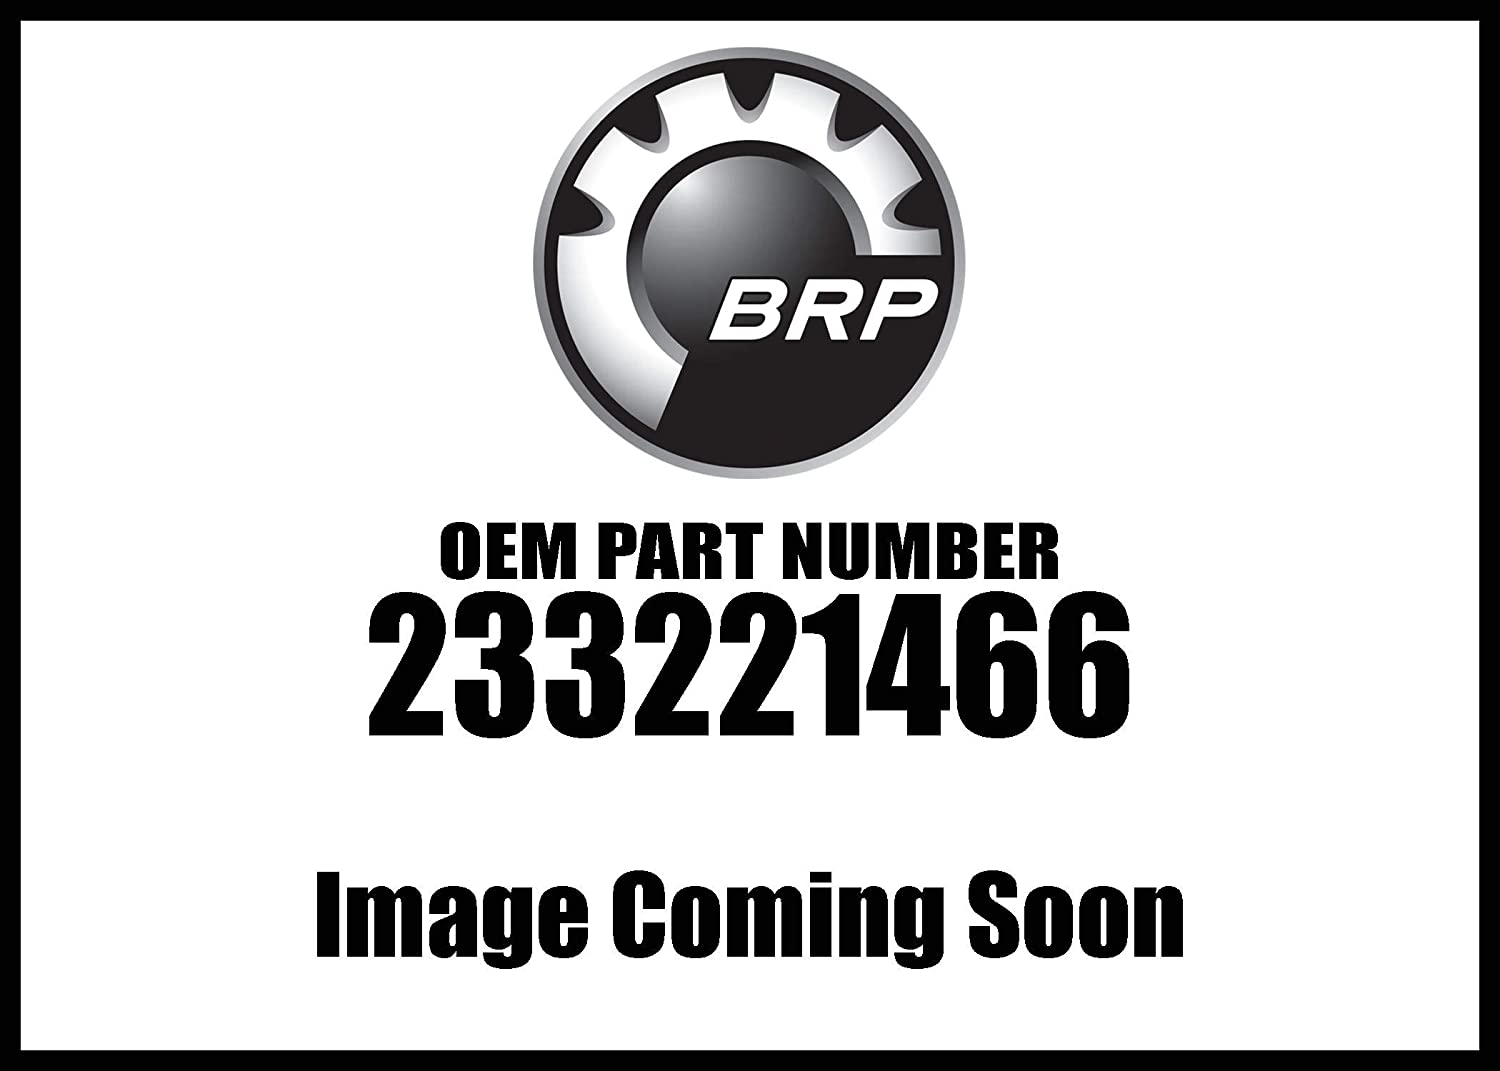 Can-Am 2017-2018 Maverick X3 Turbo Maverick Trail 1000 Elastic Flange Nut M12 233221466 New Oem BRP